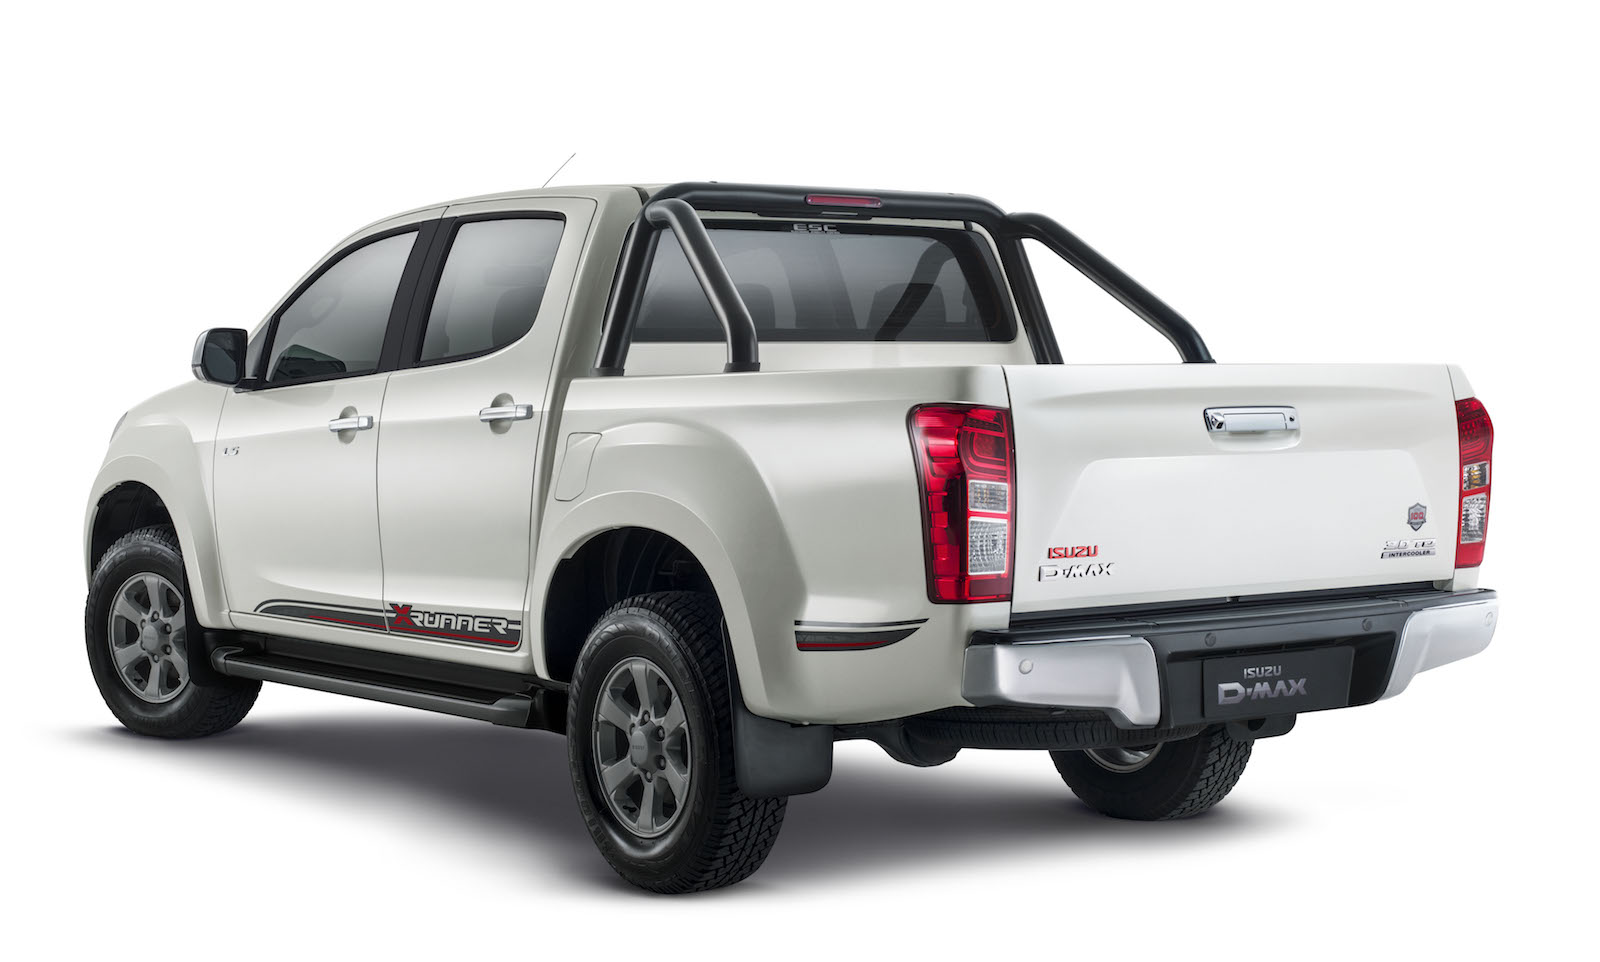 2017 isuzu d max x runner special edition on sale celebrates 100 years performancedrive. Black Bedroom Furniture Sets. Home Design Ideas